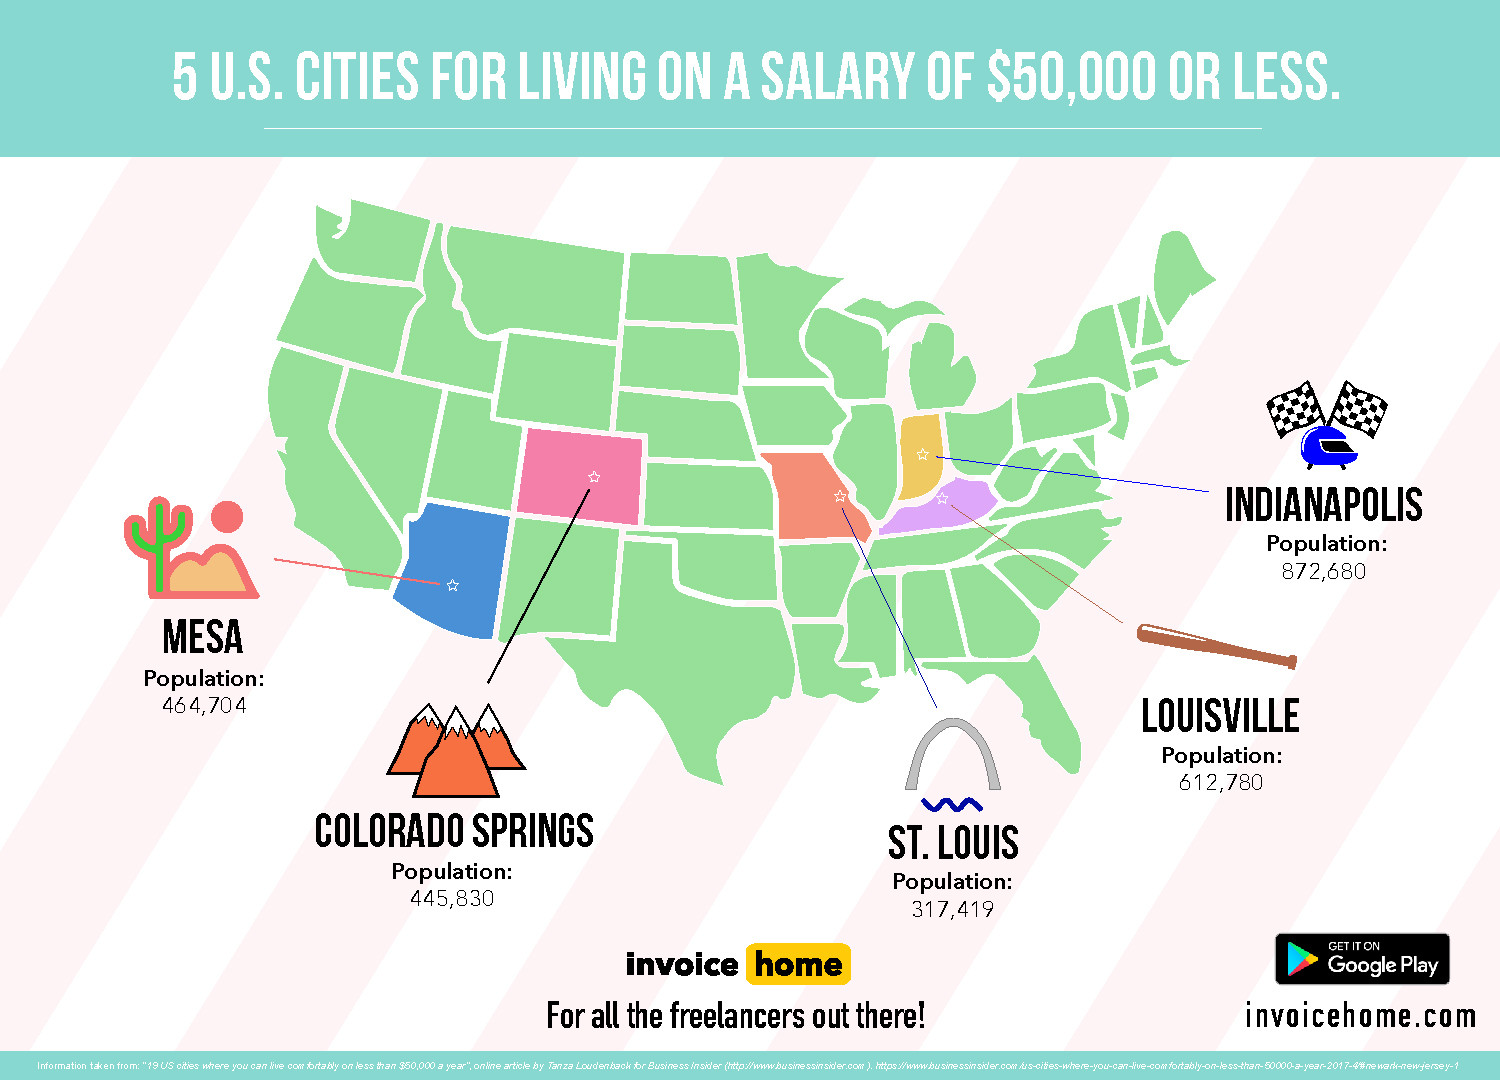 Best Cities to Live in With a Salary of $50,000 or Less - Become a Freelancer easily with Invoice Home! Infographic